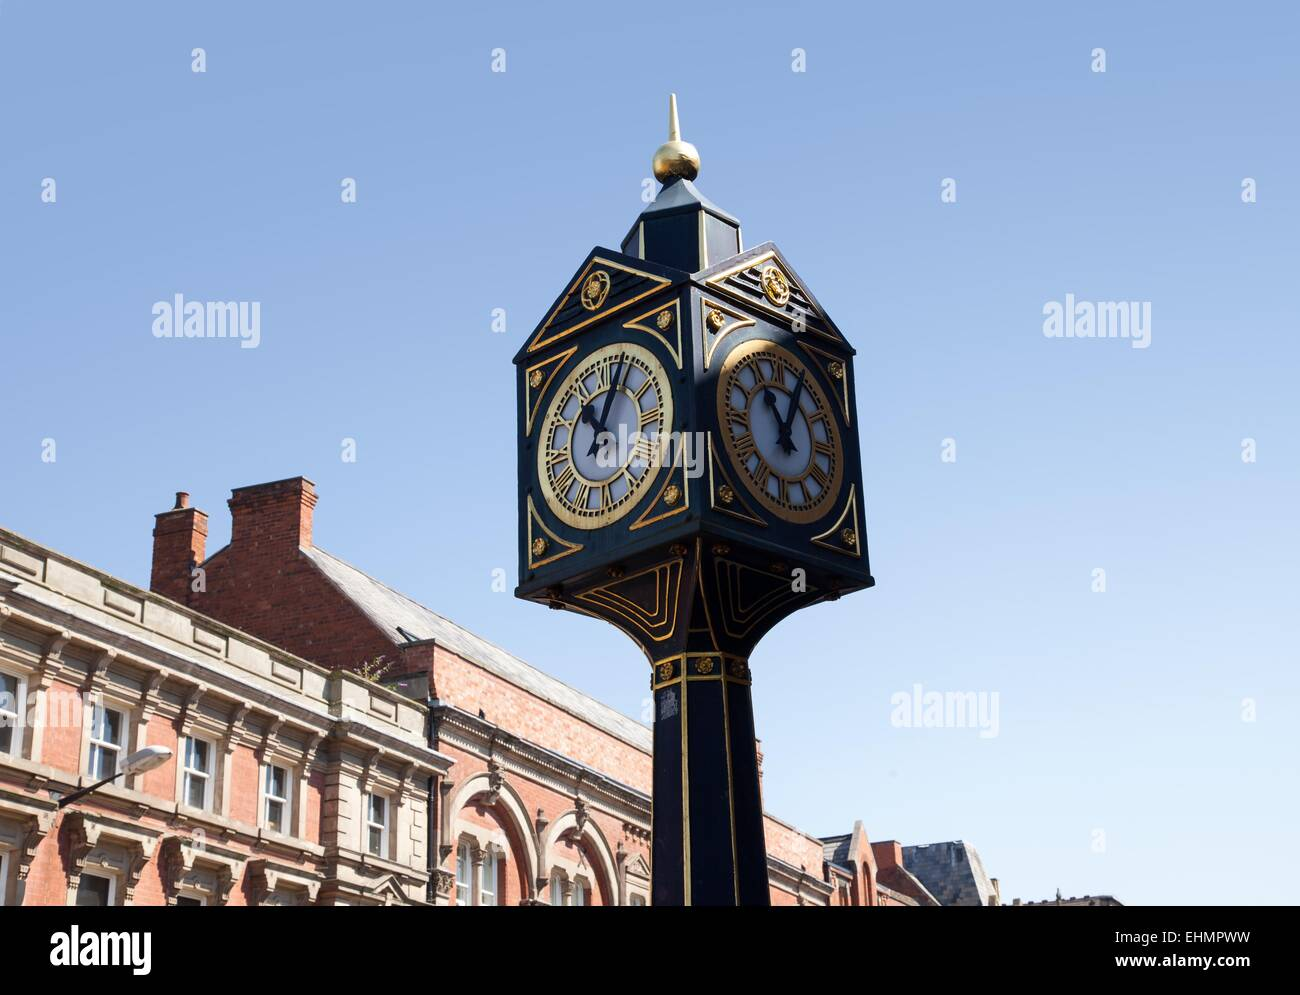 The Market Square clock, Walsall, West Midlands - Stock Image